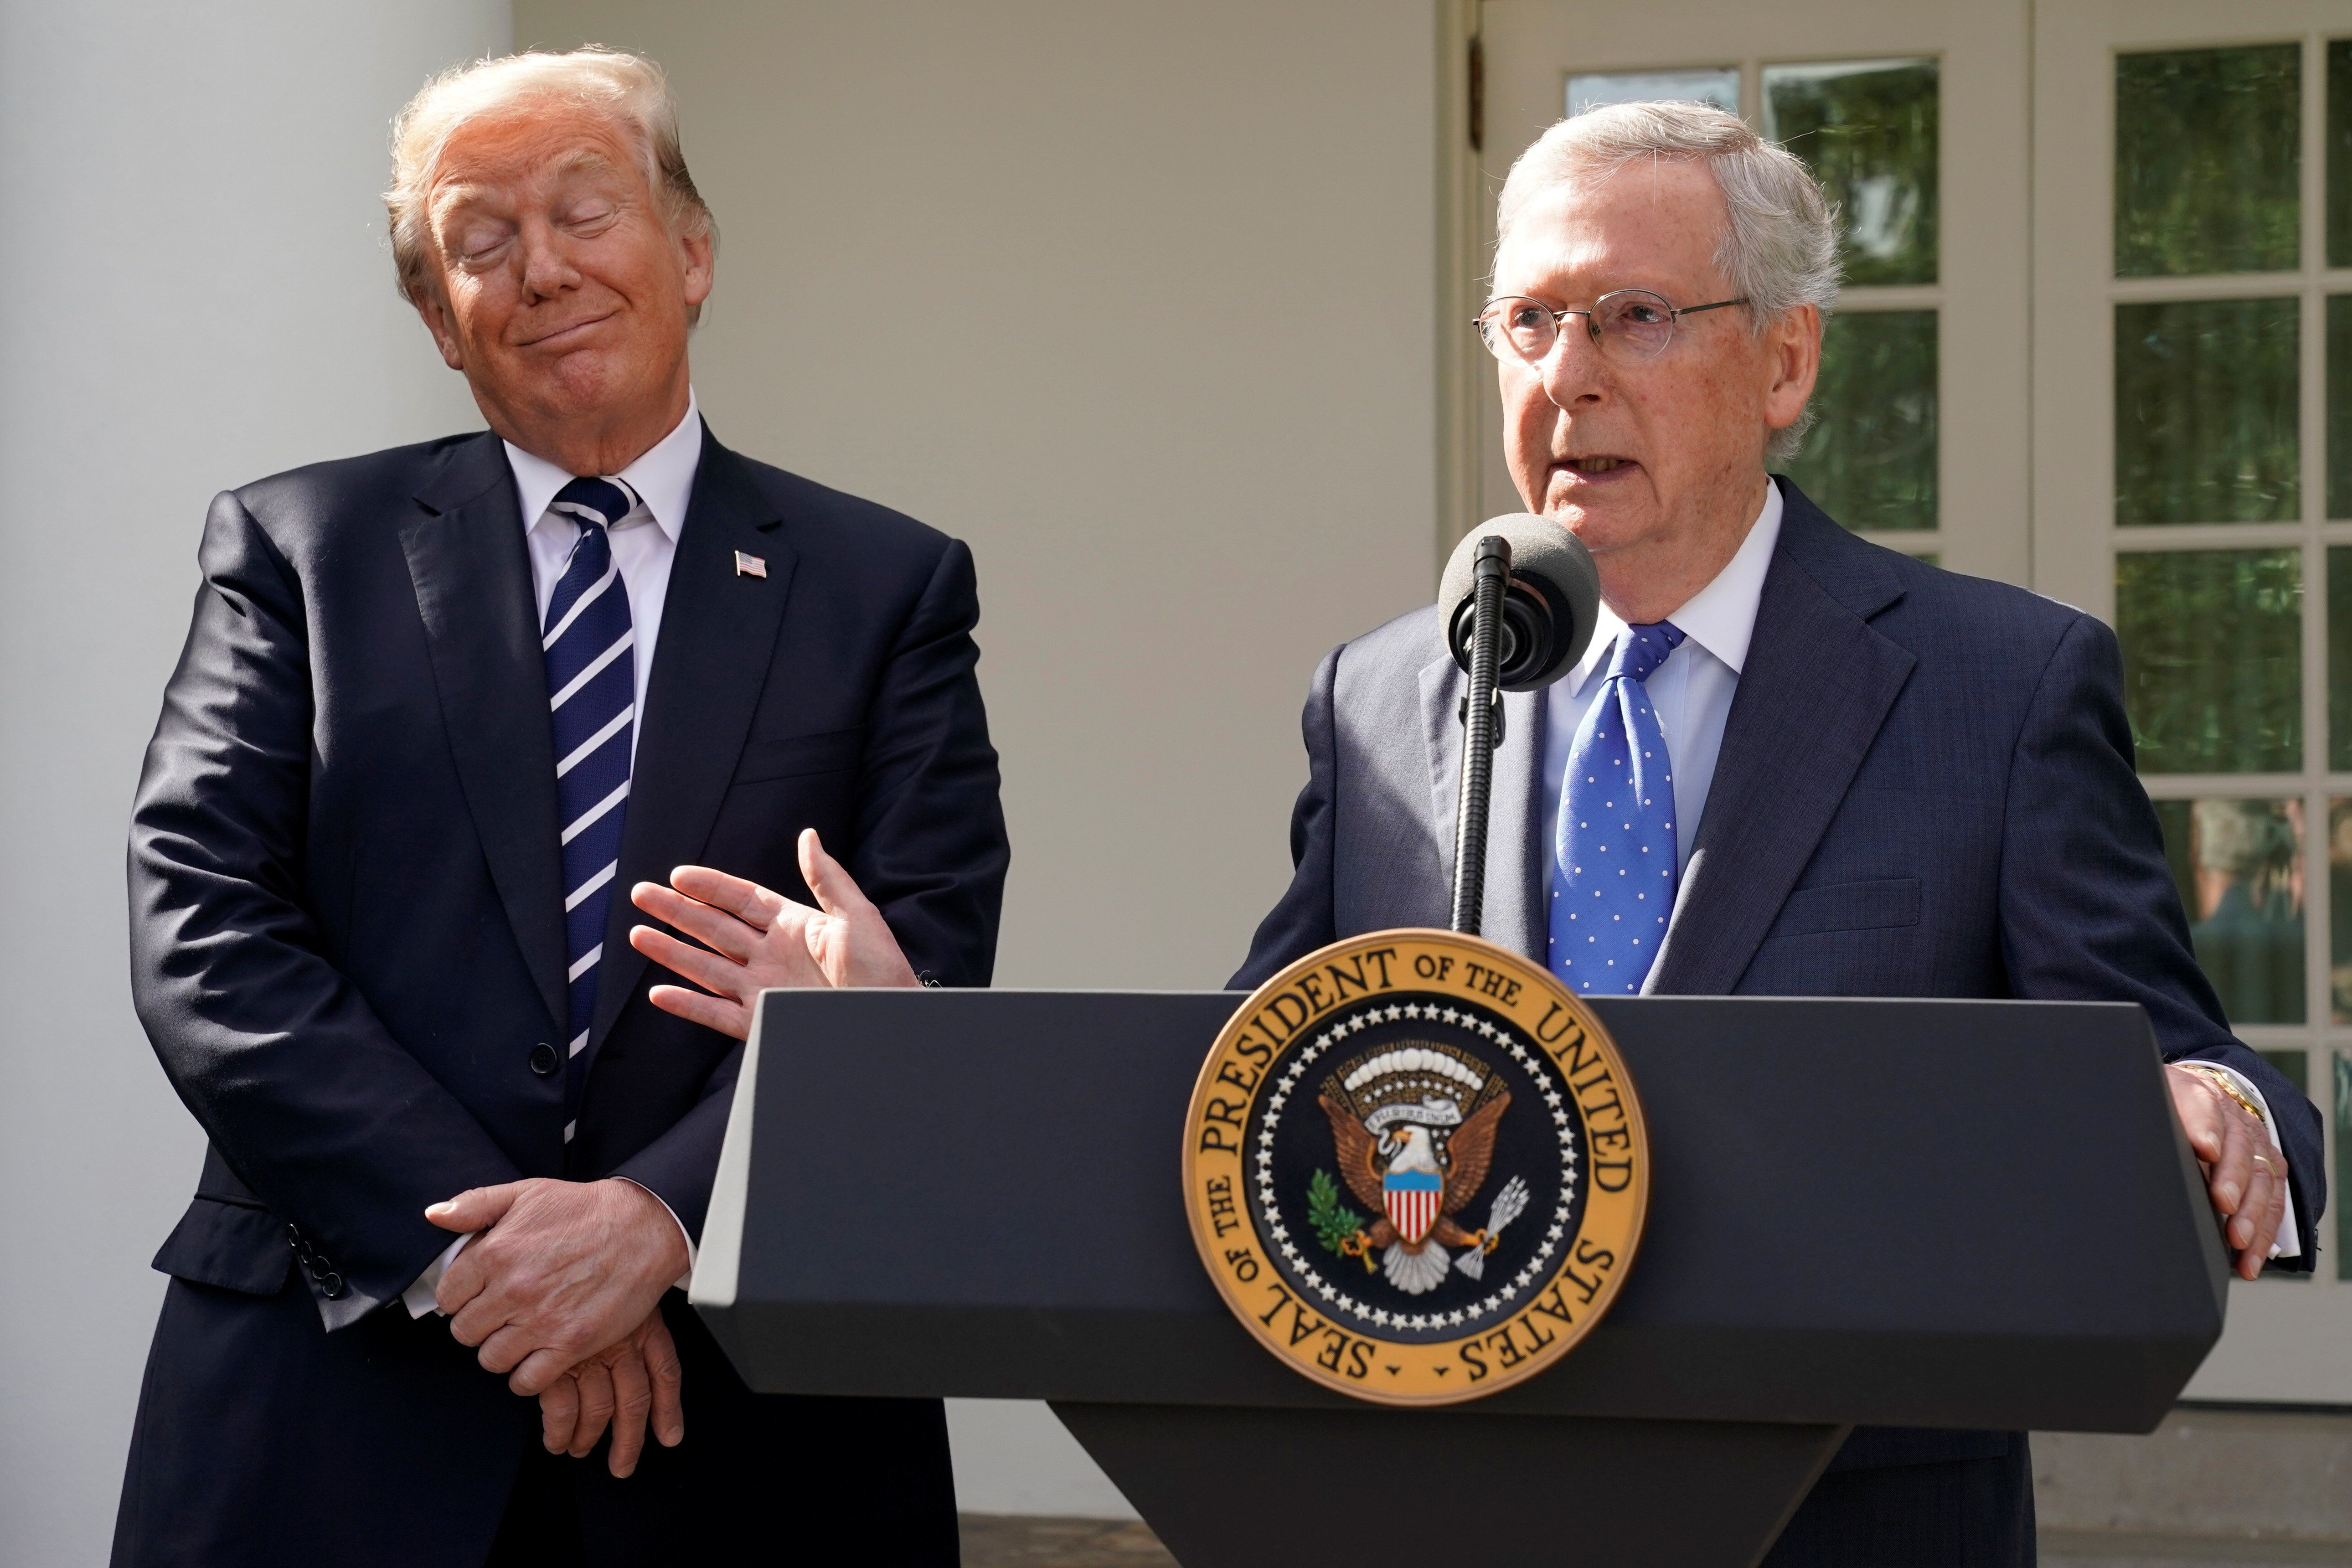 U.S. Senate Majority Leader Mitch McConnell speaks to the media with U.S. President Donald Trump at his side in the Rose Garden of the White House in Washington, U.S., October 16, 2017. REUTERS/Yuri Gripas